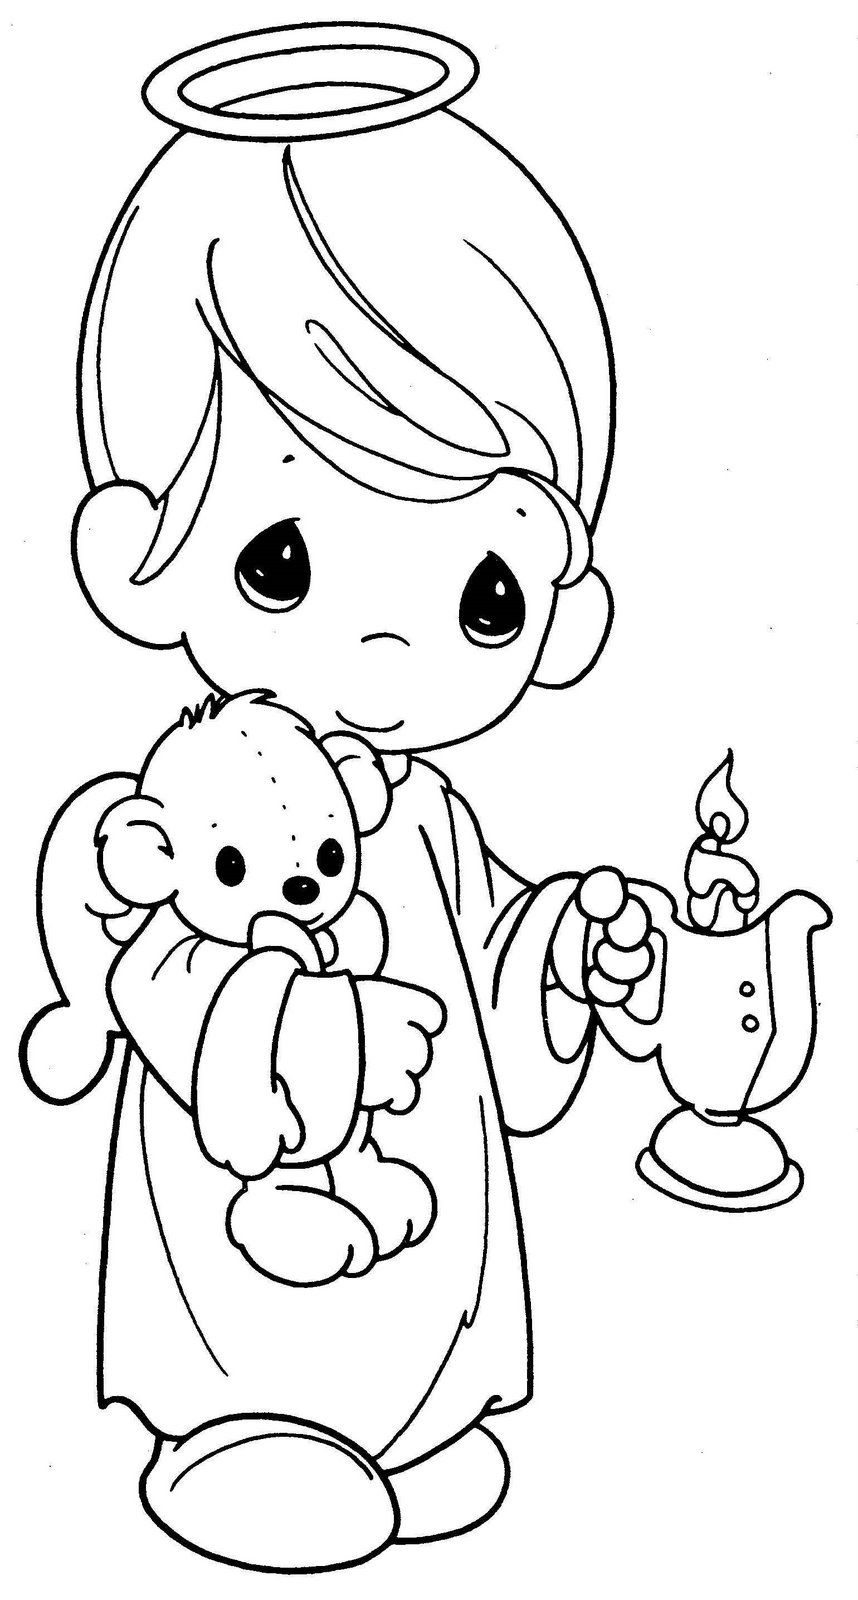 Quiet book: boy angel. Take away candle and put a sign with Jesus ...